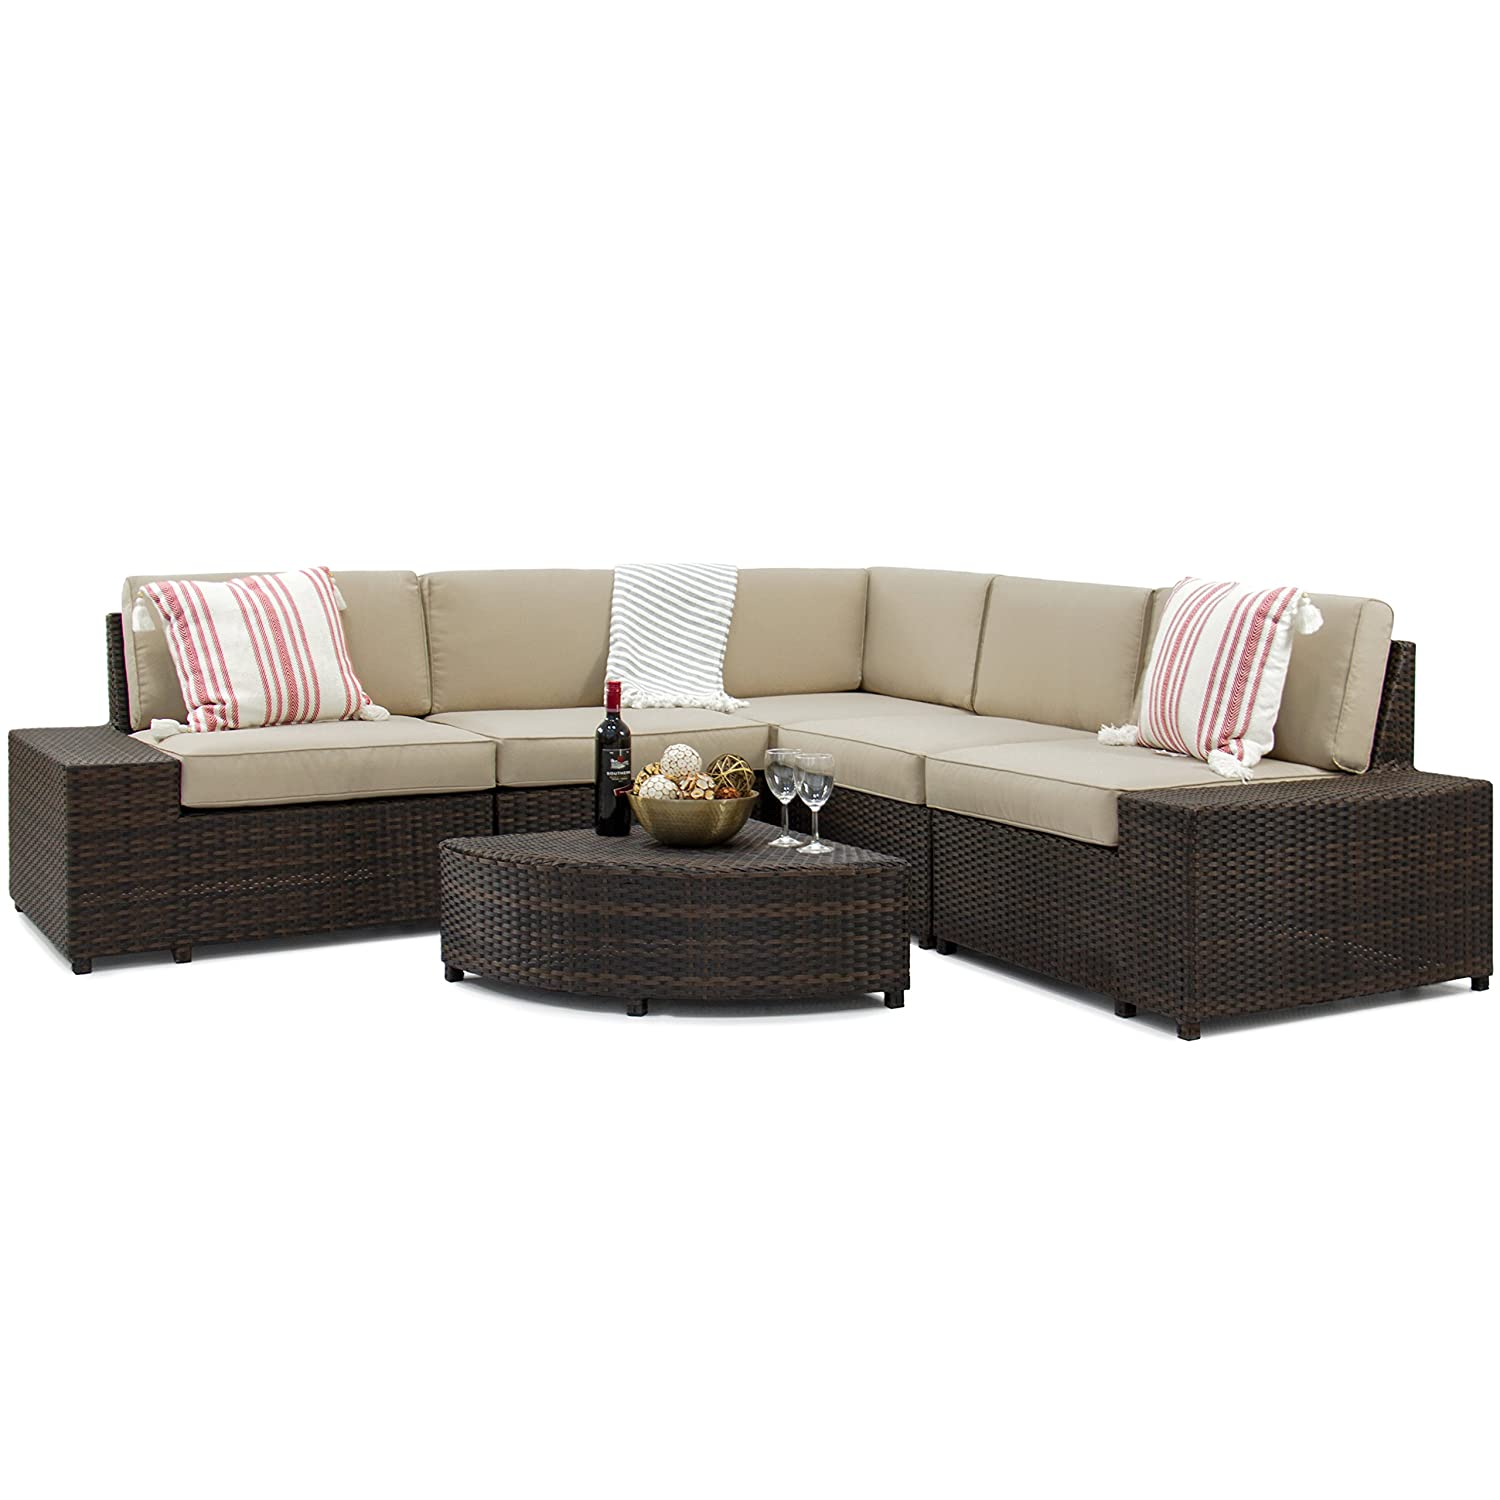 Amazon.com: Best Choice Products 6 Piece Wicker Sectional Sofa Patio  Furniture Set W/5 Seats, Corner Coffee Table, Padded Cushions, No Assembly  Required ...